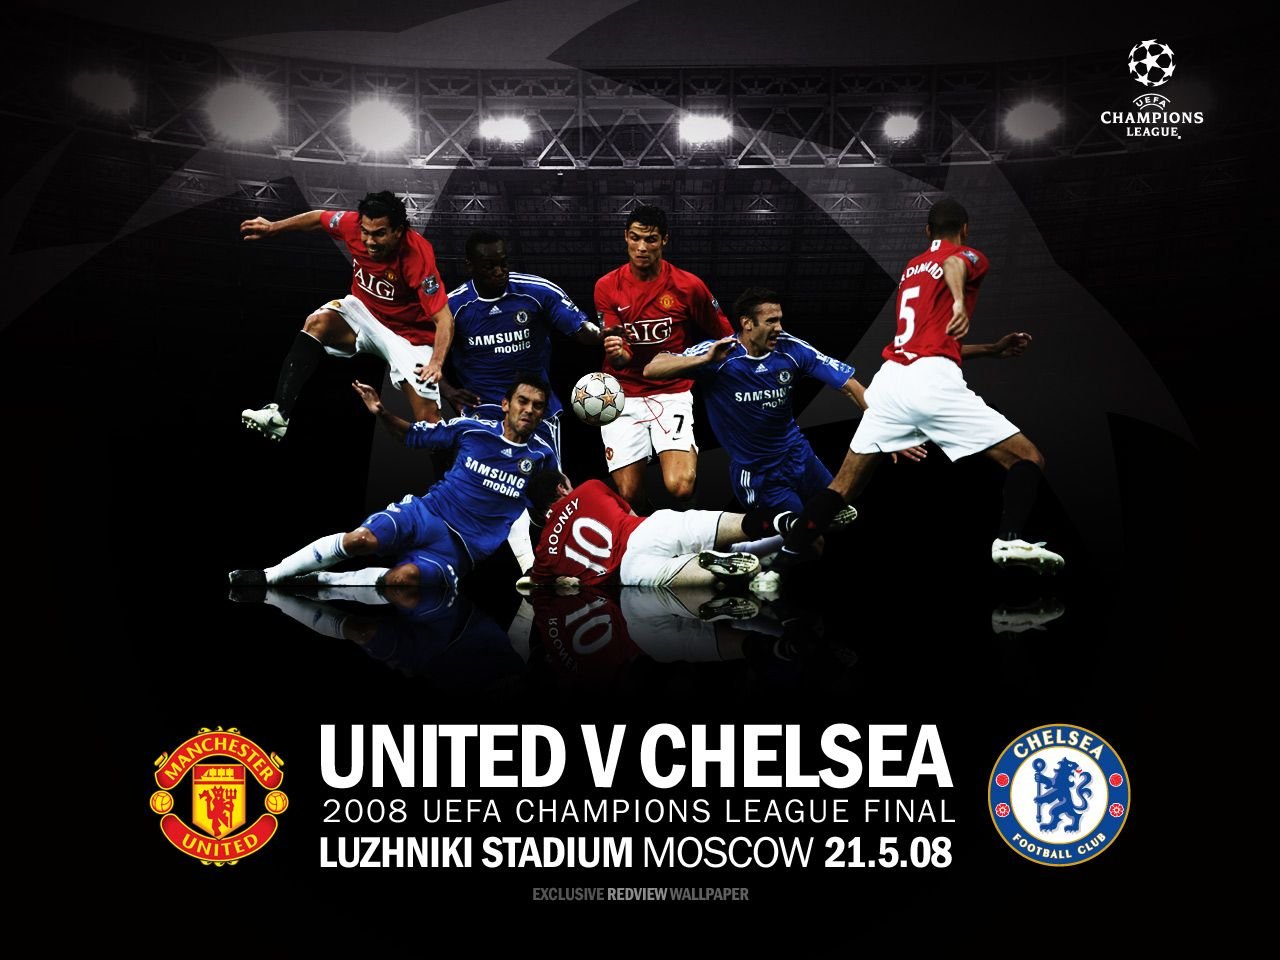 Manchester United Vs Chelsea 2011 2012 Wallpapers Sports Mania 1280x960